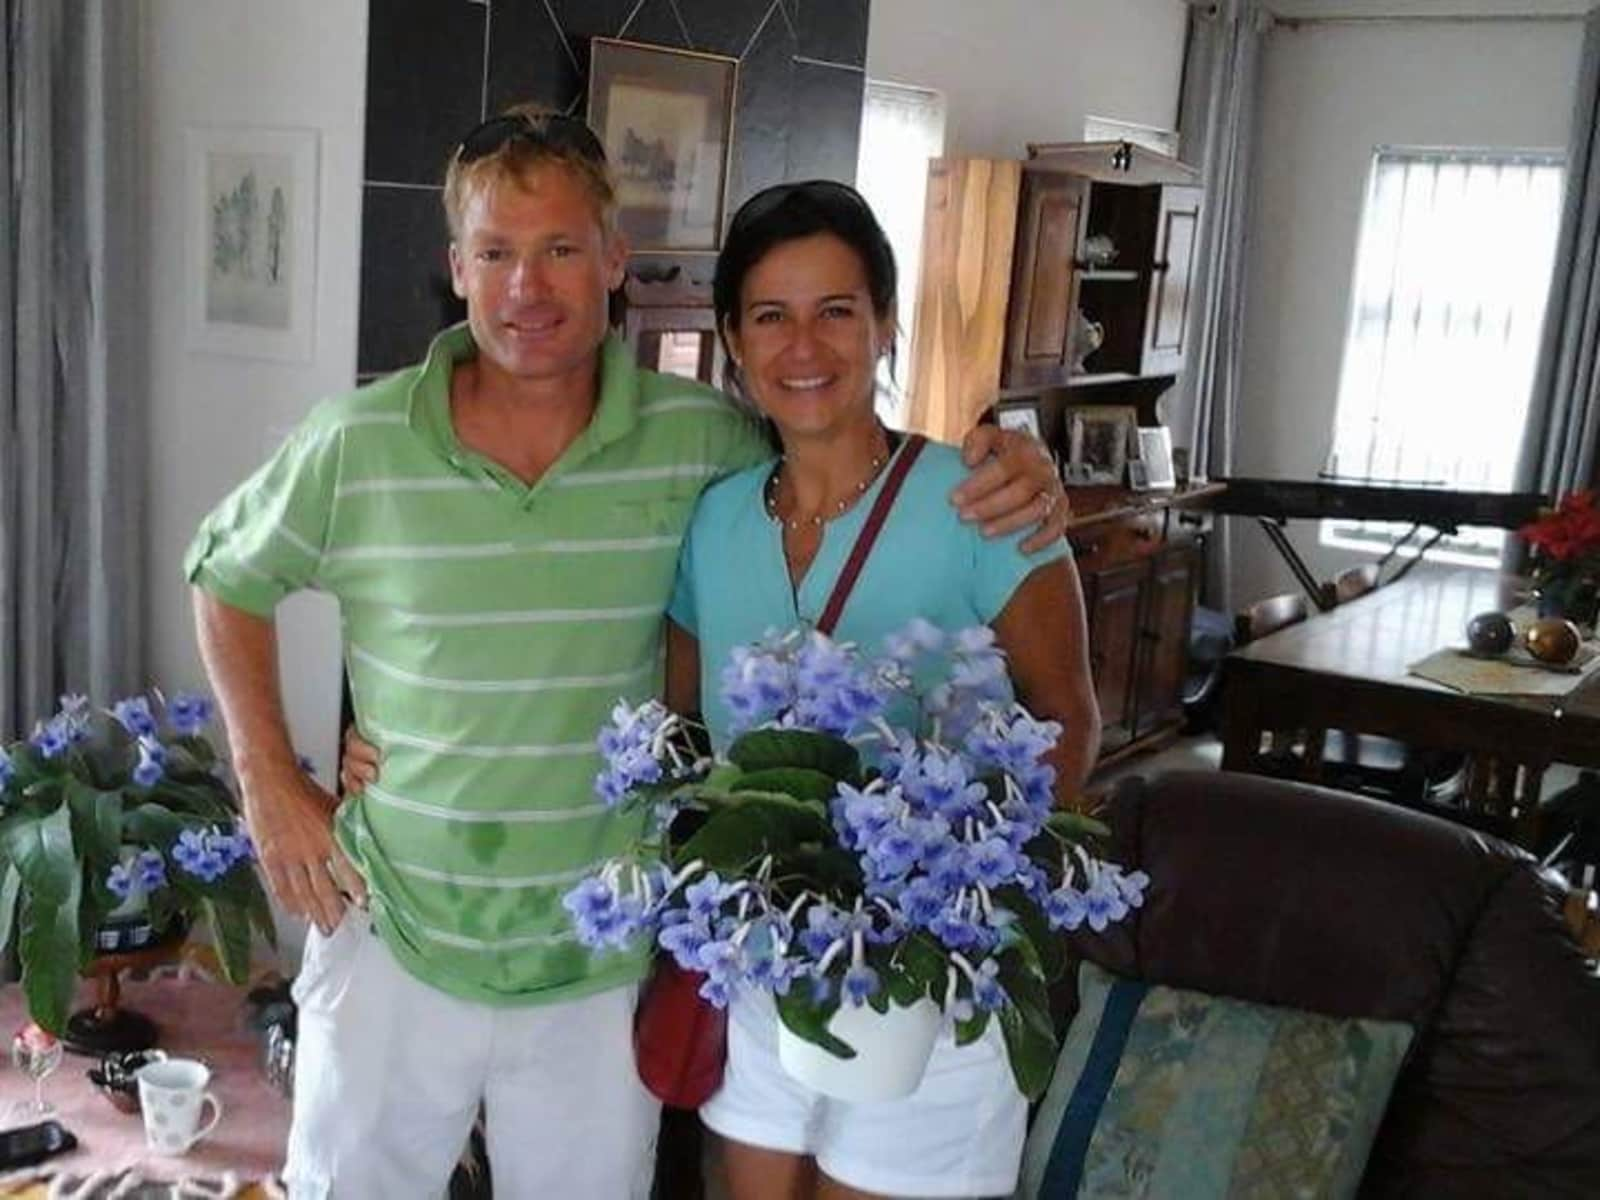 Robert & Jasna from George, South Africa